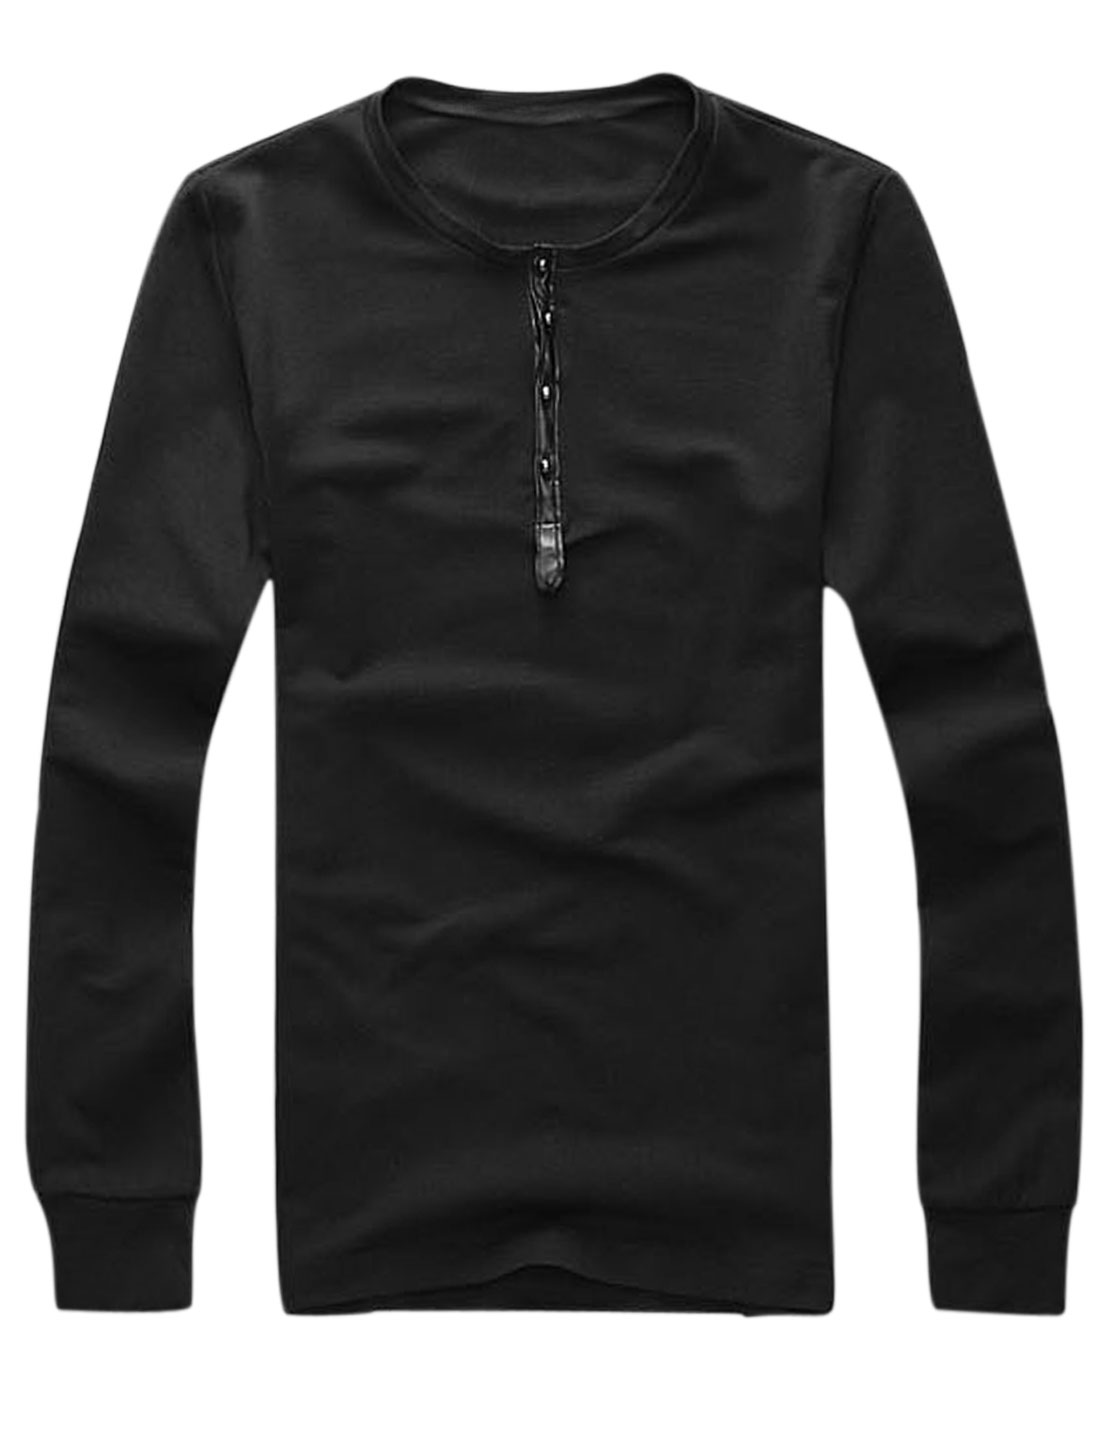 Men Studs Closed Design Casual Henley Shirt Black M